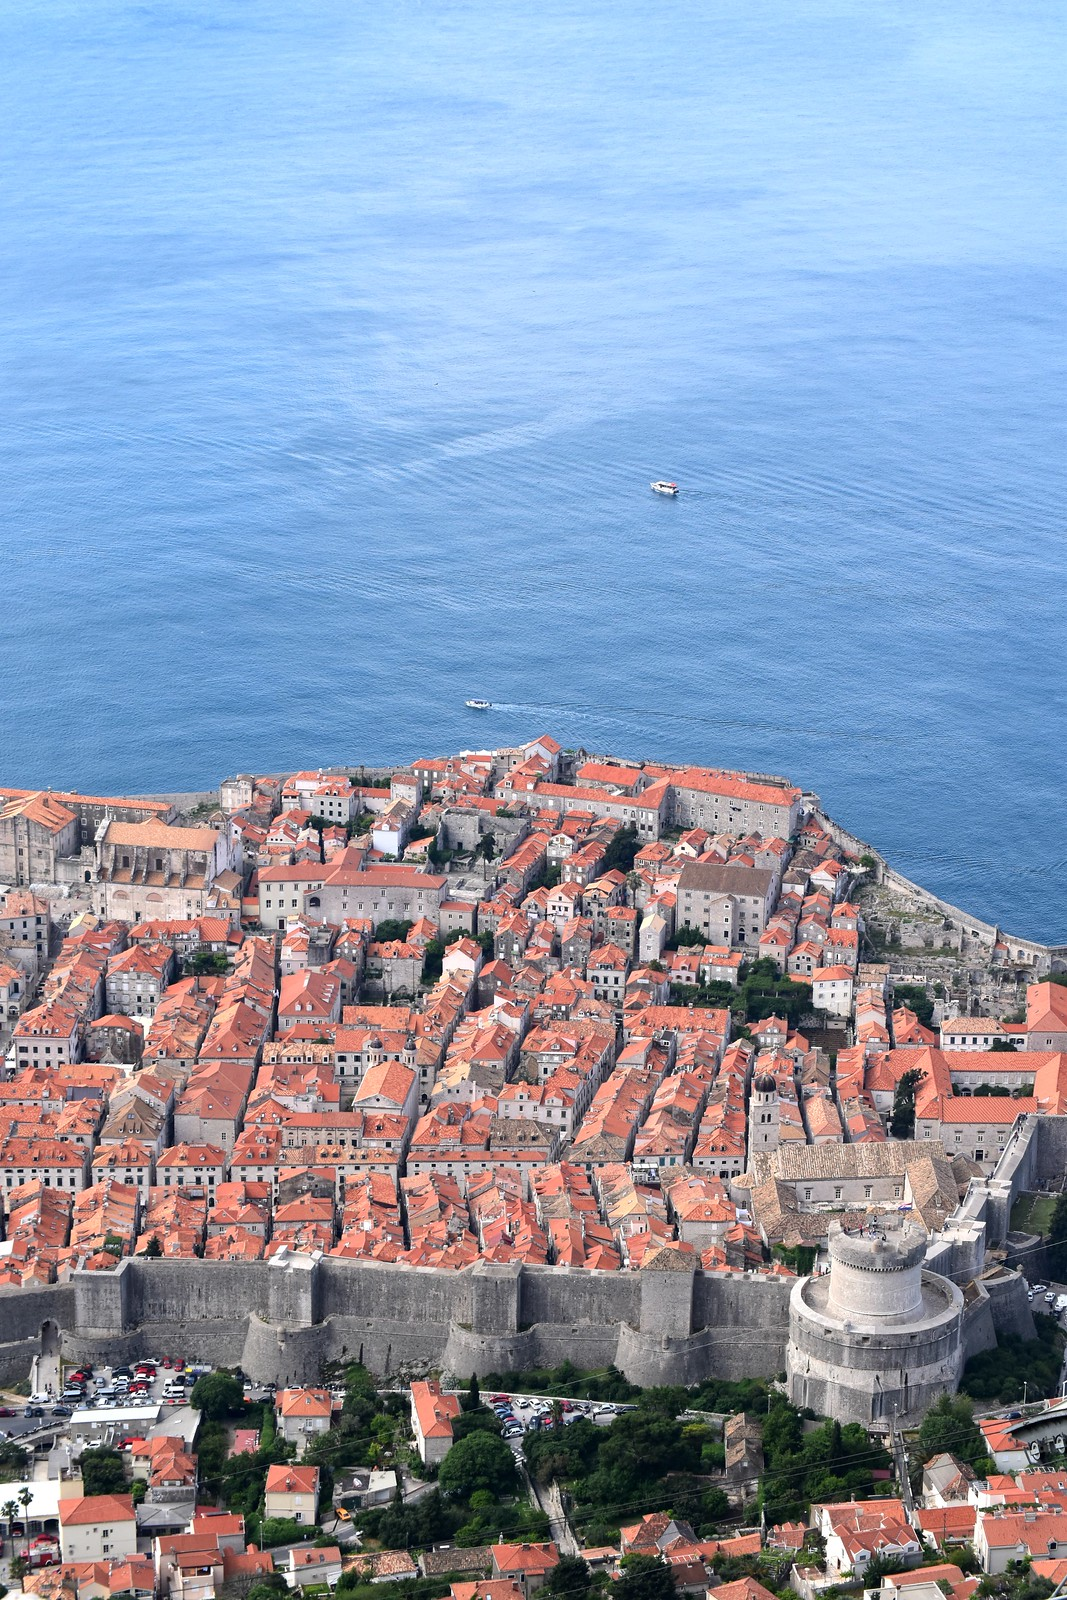 Beautiful Old Town Dubrovnik within the medieval walls